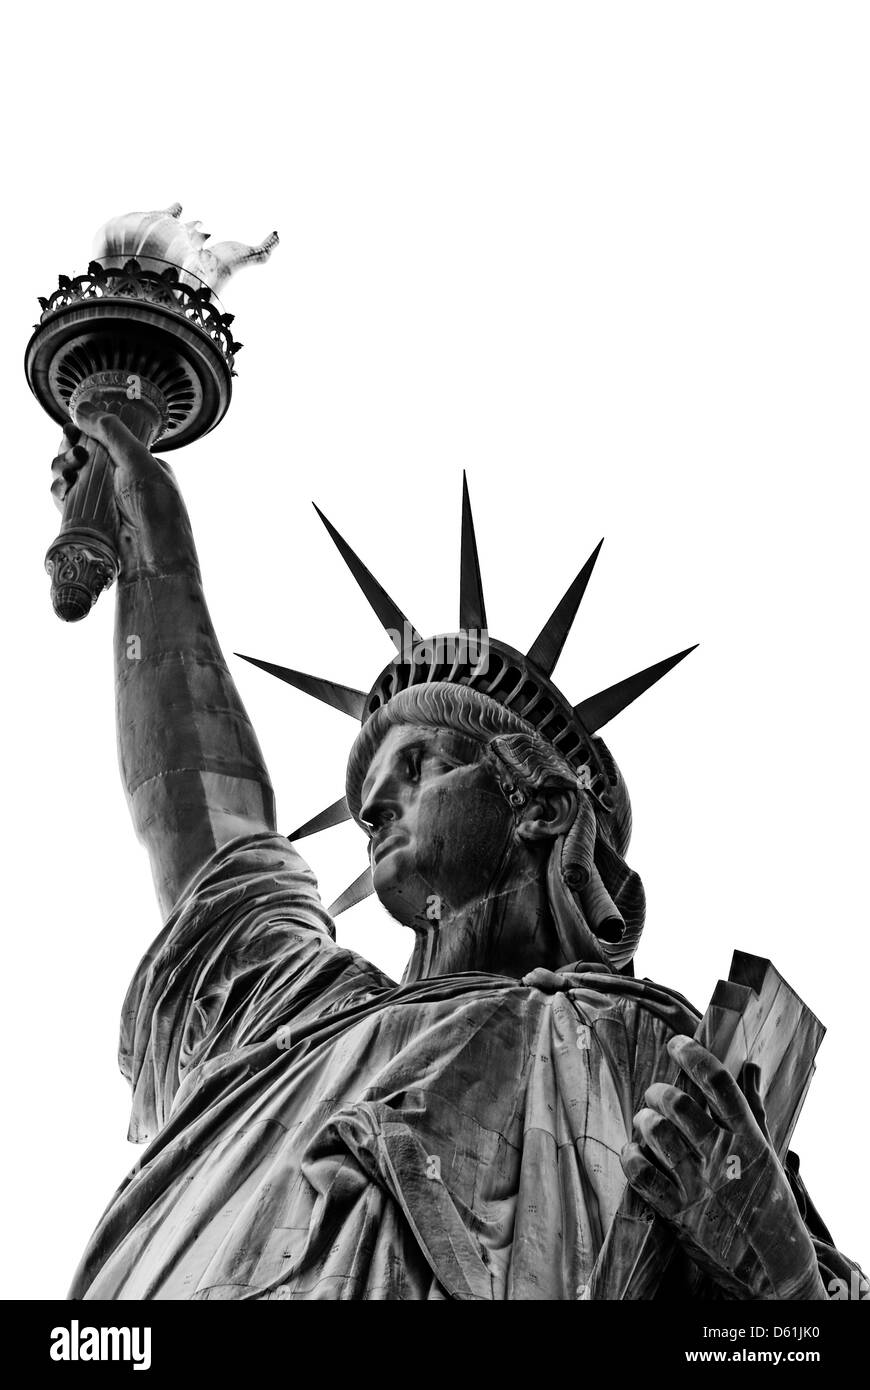 Statue of Liberty, New York City, New York, United States of America, USA - black and white, isolated on white background - Stock Image